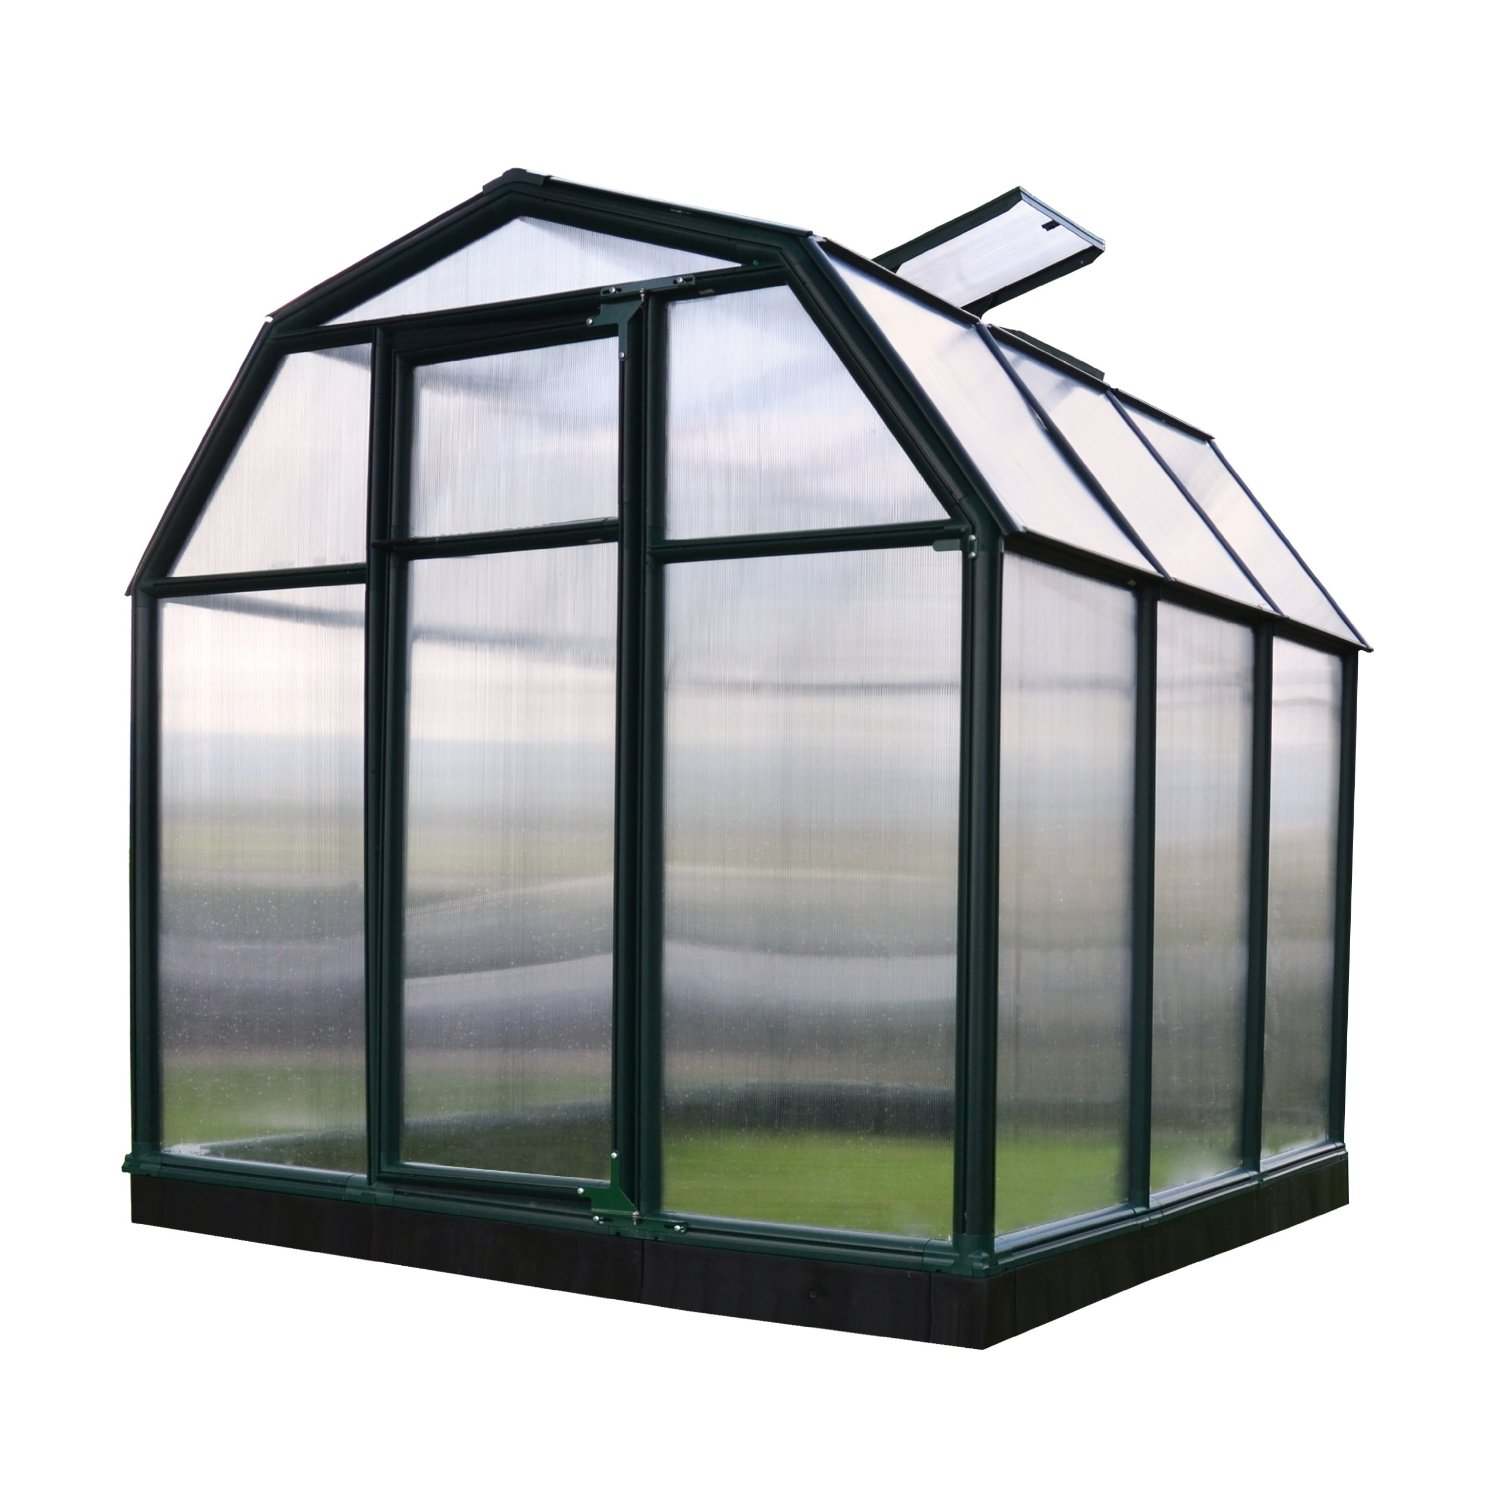 Eco Grow 2 Twin Wall 6' x 6'